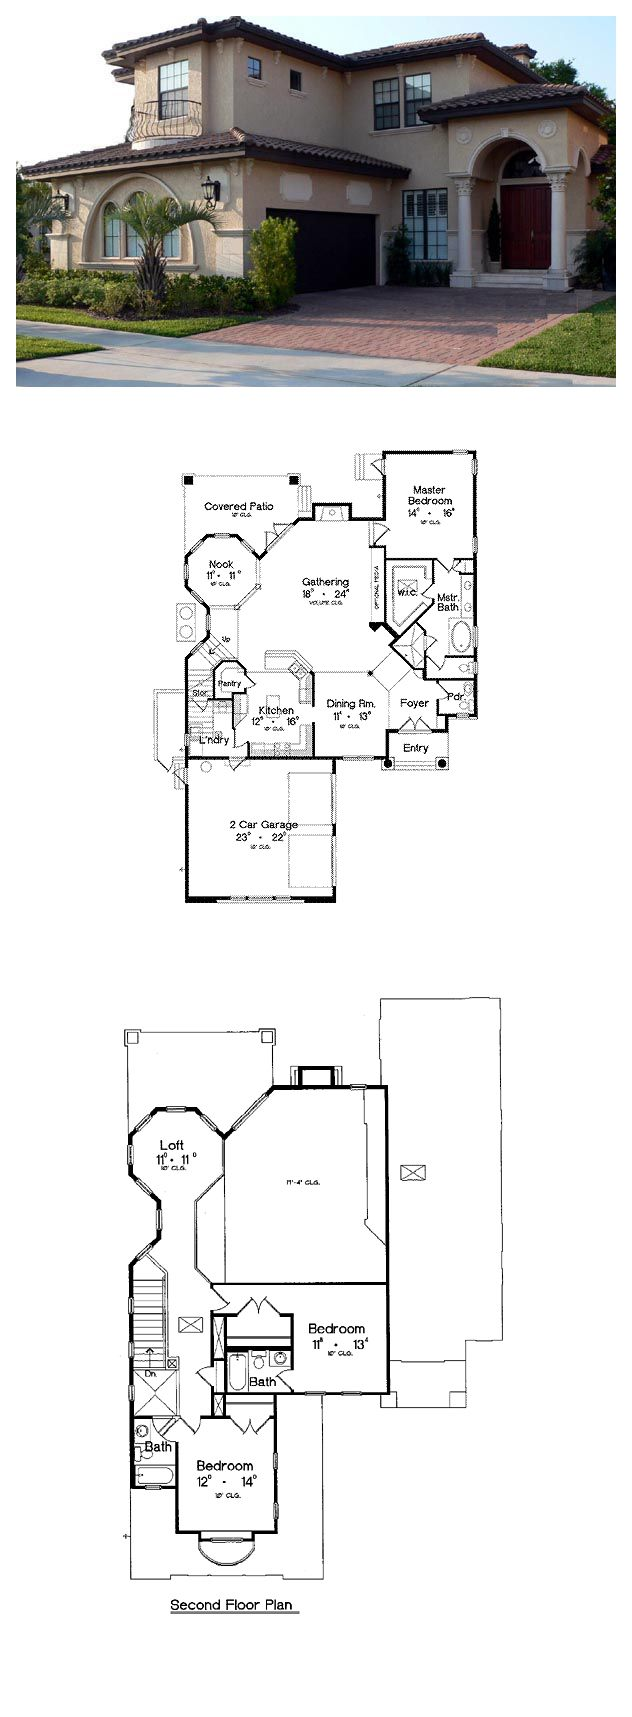 Italian house plan 64616 total living area 2733 sq ft 3 bedrooms